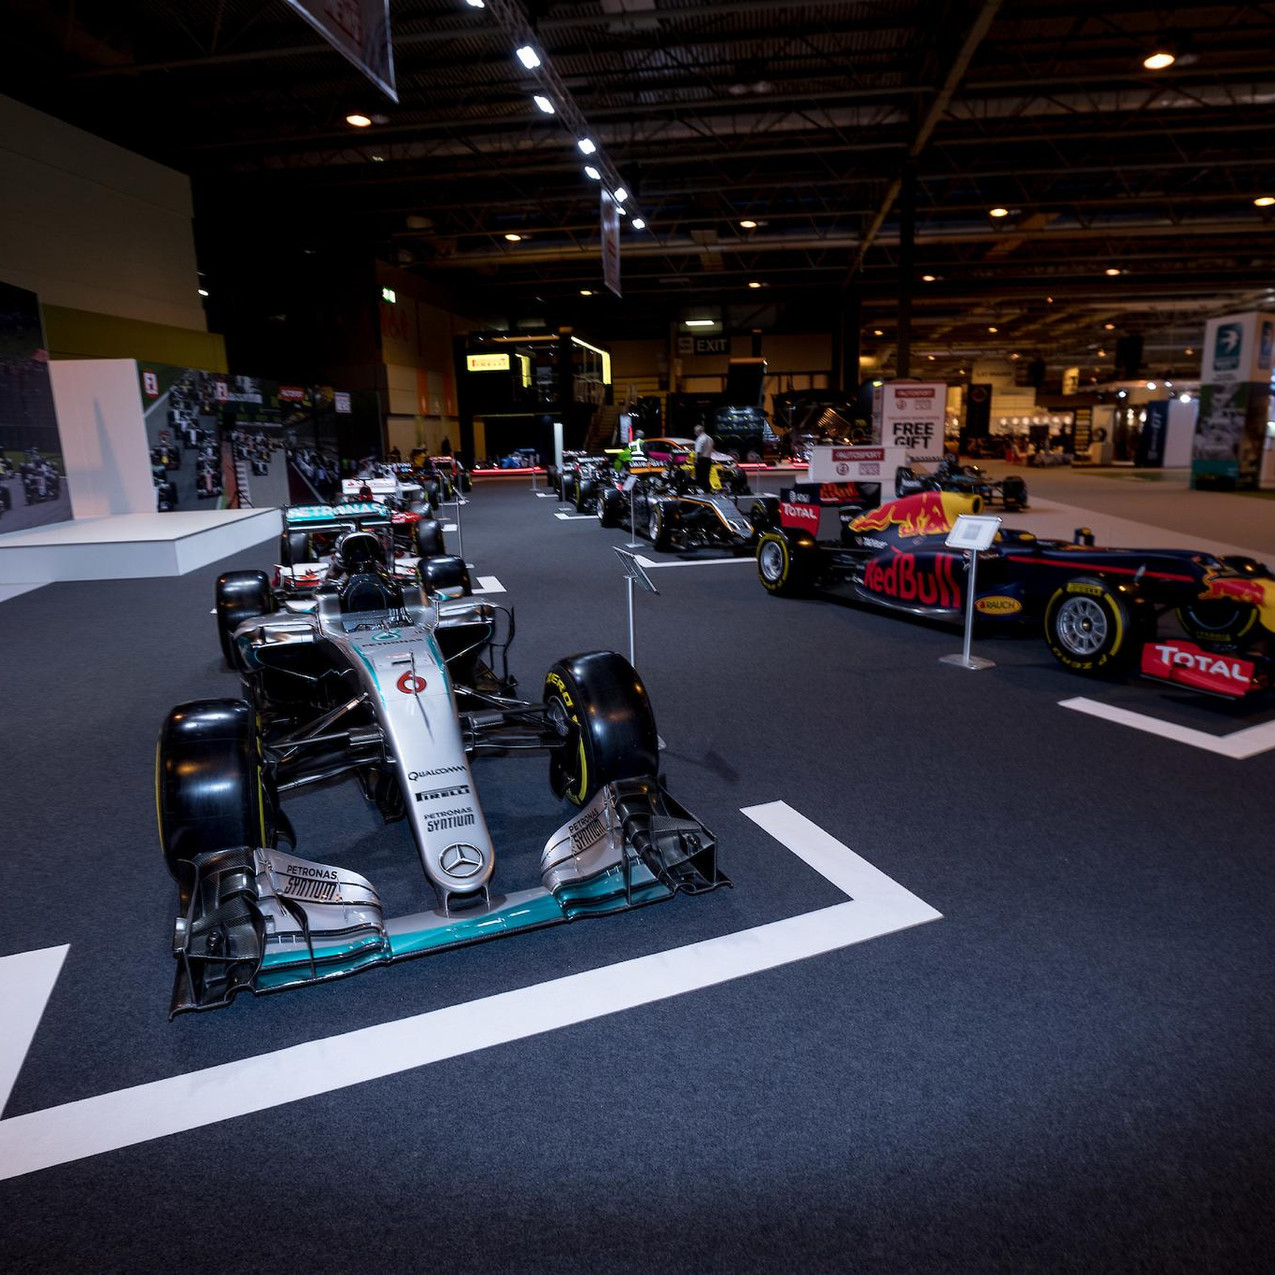 Staging Services stage at Autosport - picture by Autosport